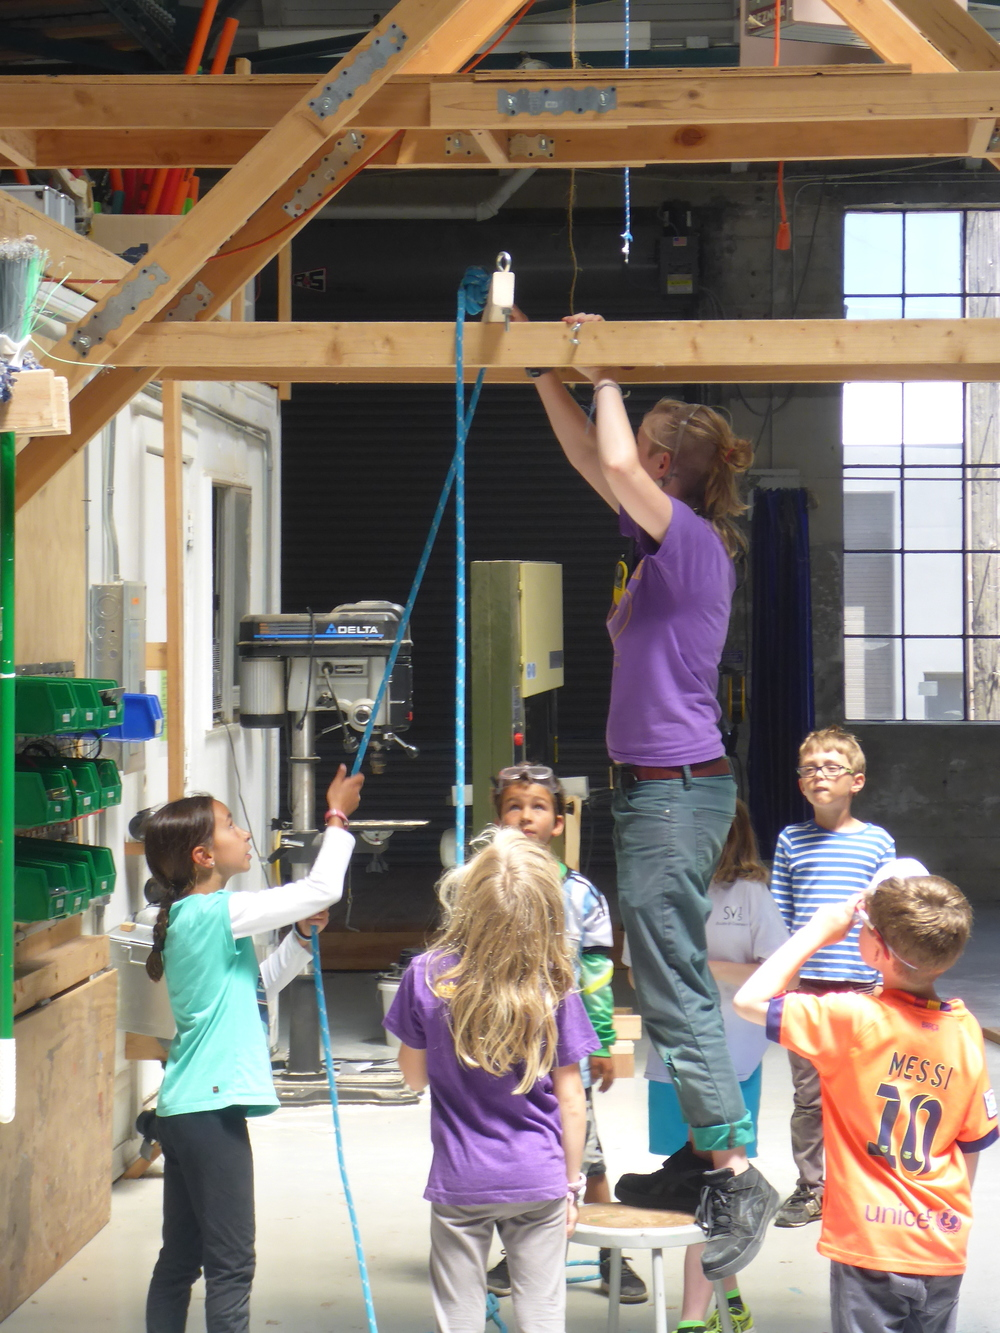 Leila, Kenan, Augie, Abe and Maya practice working with rope in order to prototype mobile hanging methods.